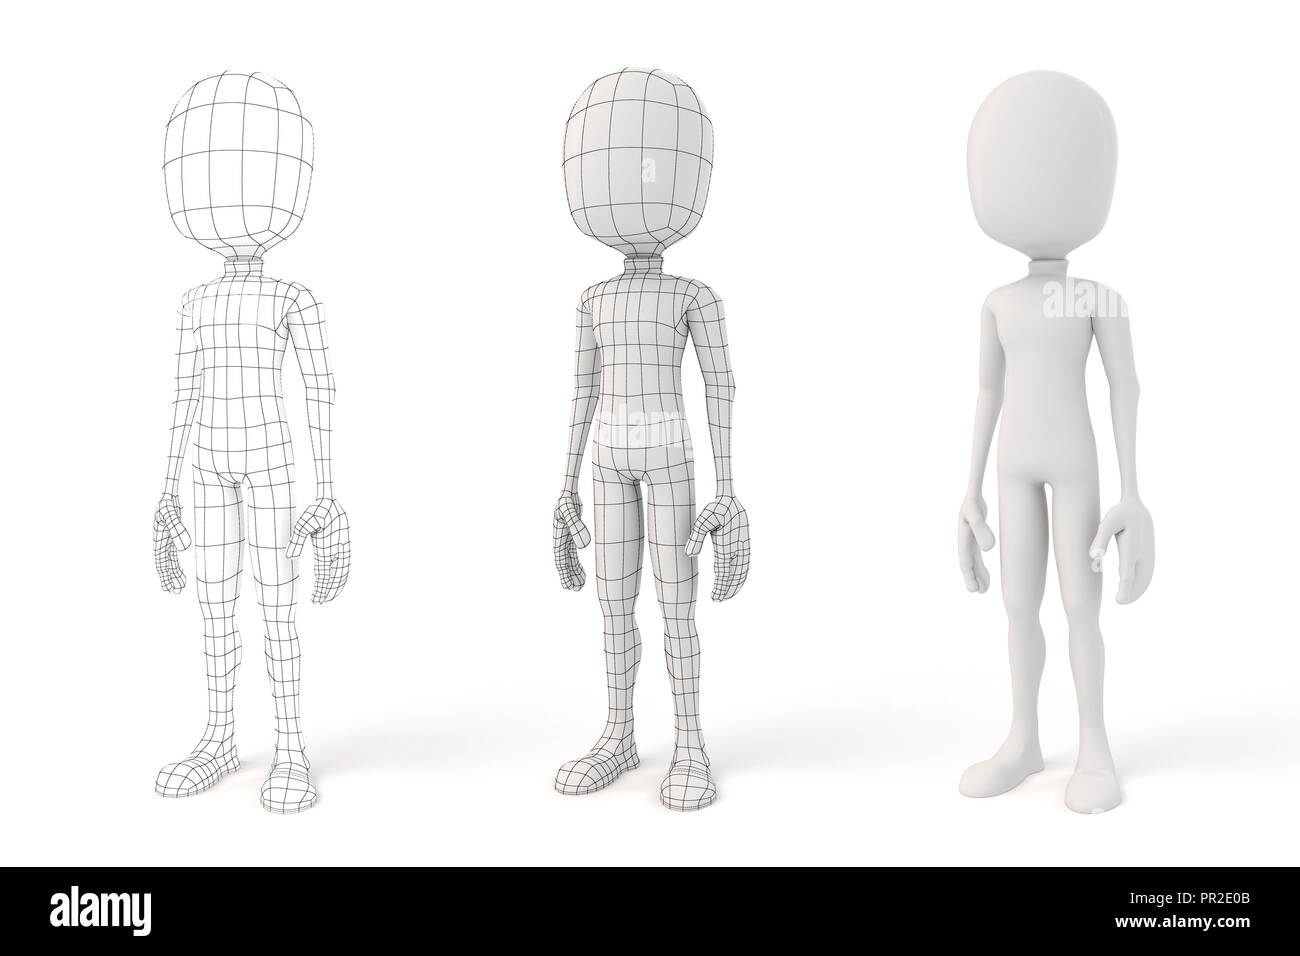 3d man posing on white background showing the geometry edges - Stock Image